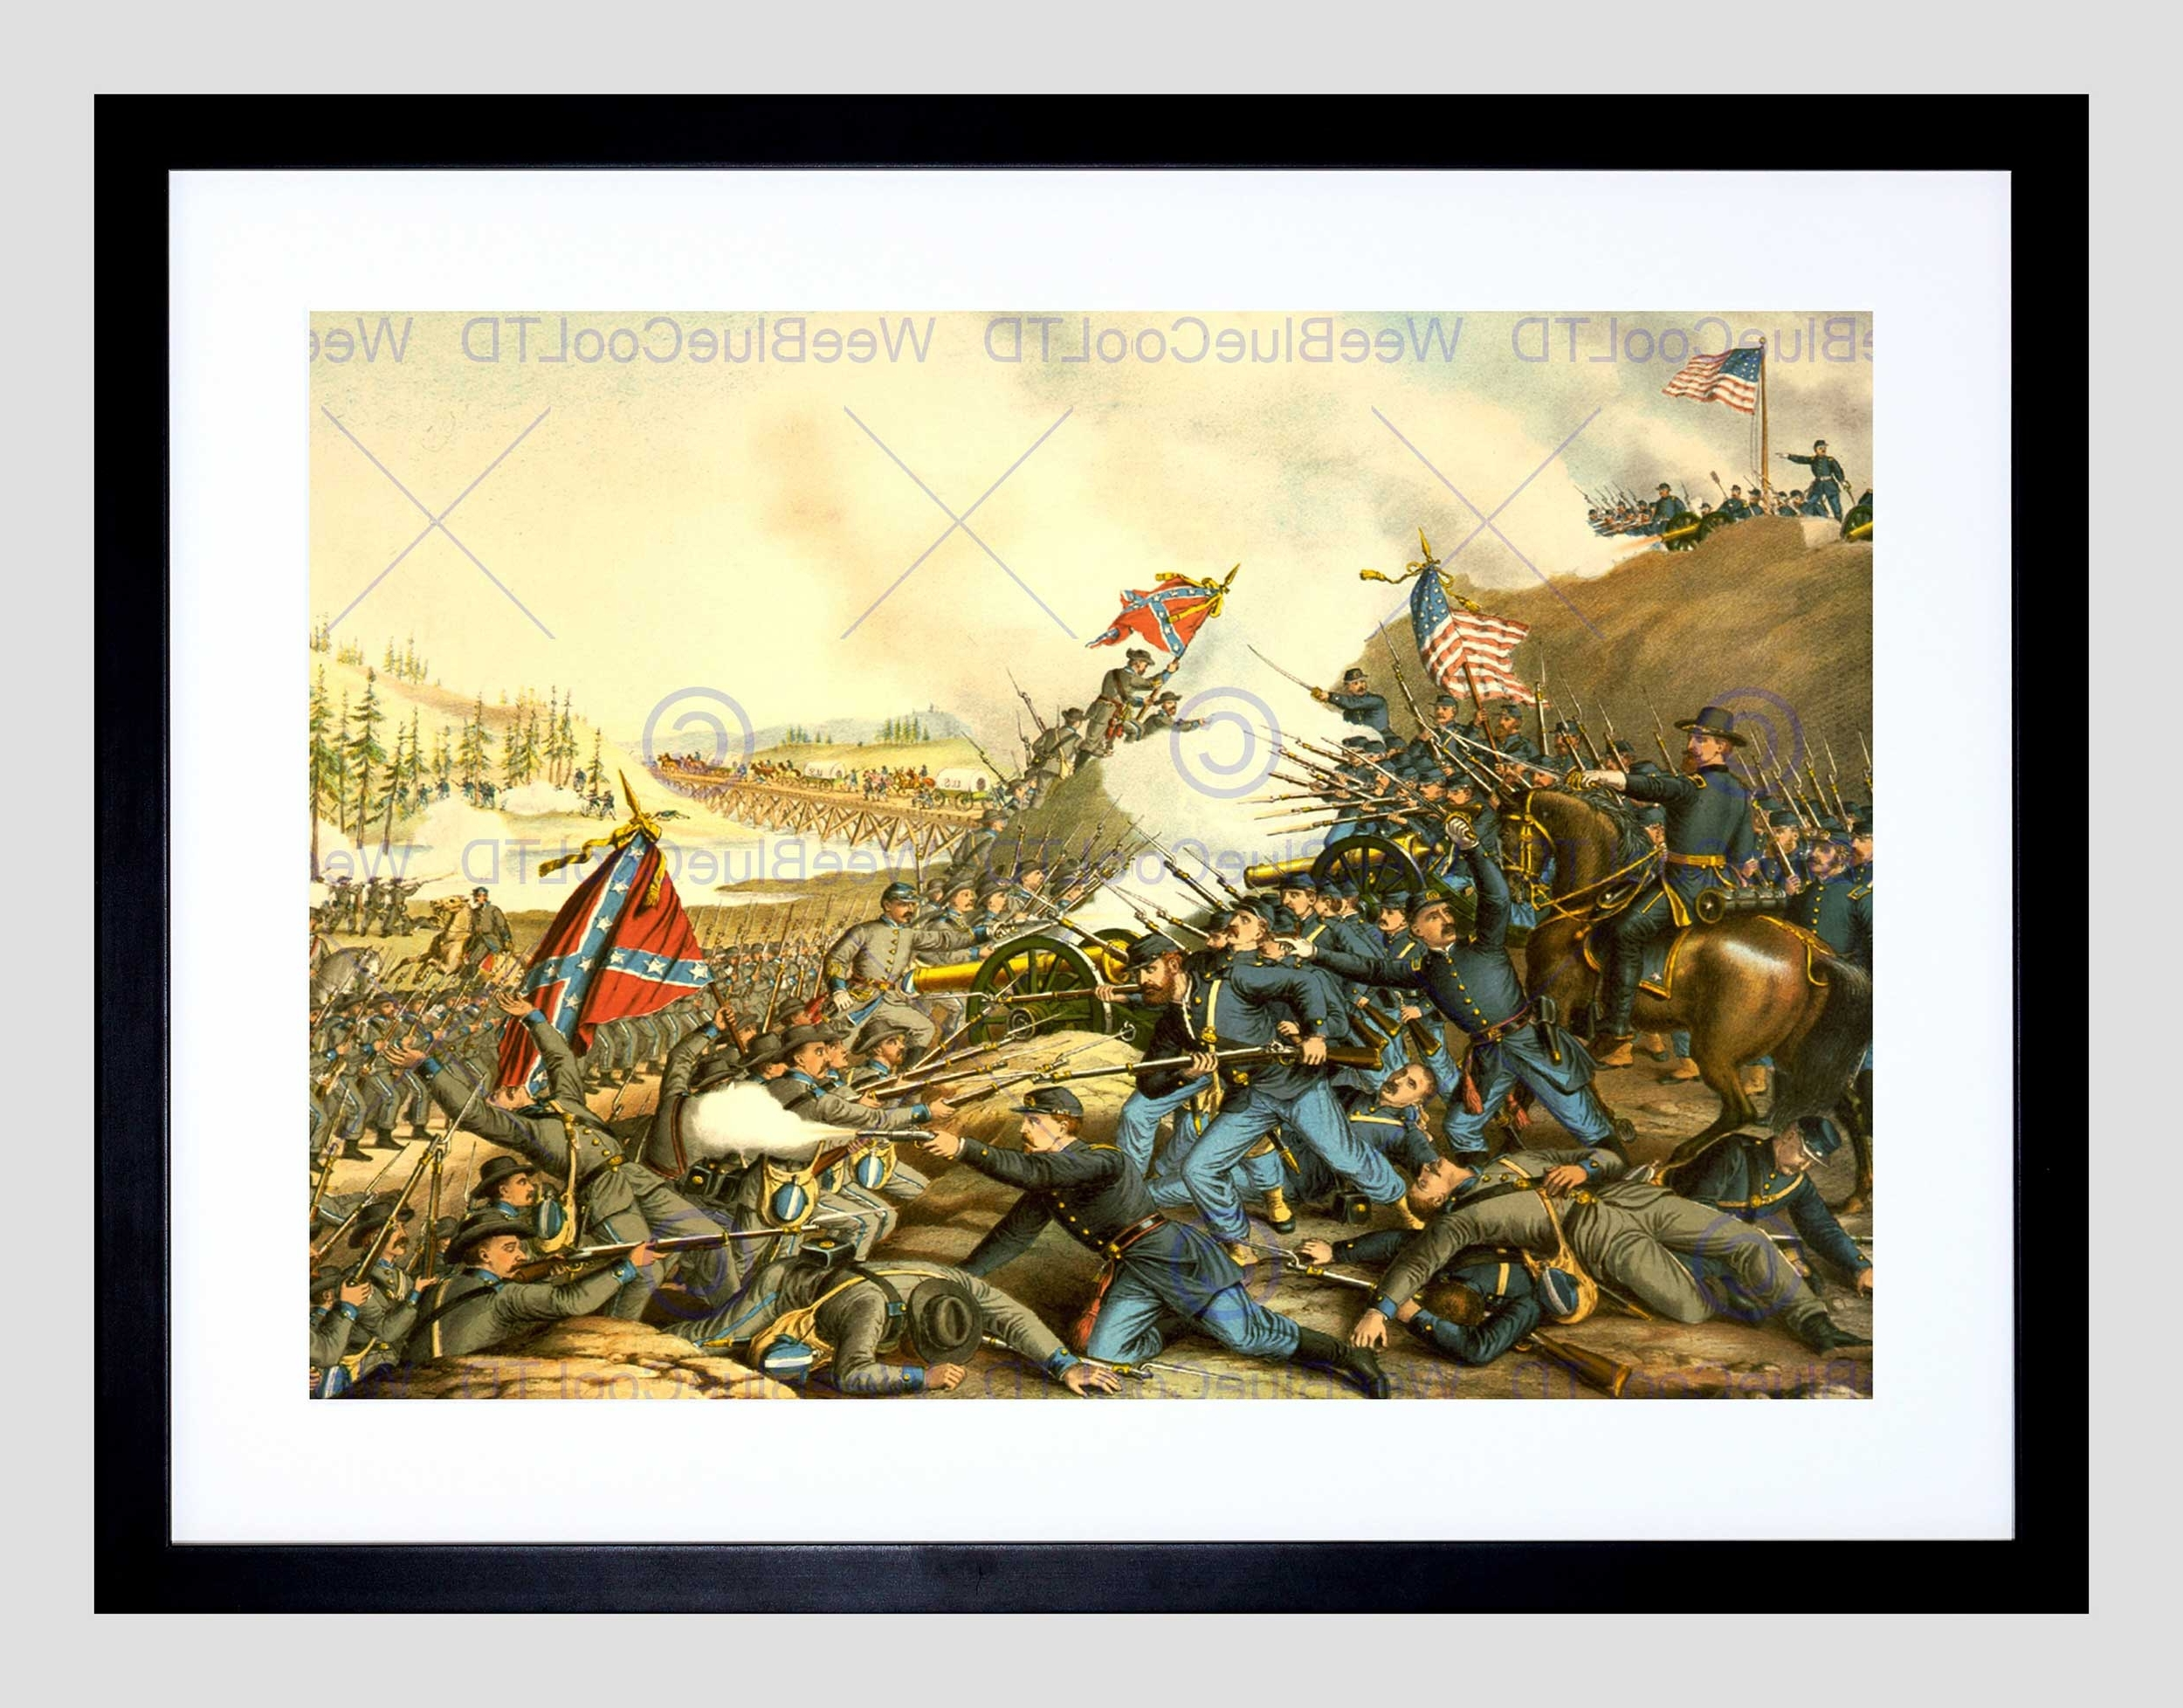 War American Civil Battle Franklin Union Confederate Framed Art Intended For Well Known Confederate Framed Art Prints (View 13 of 15)